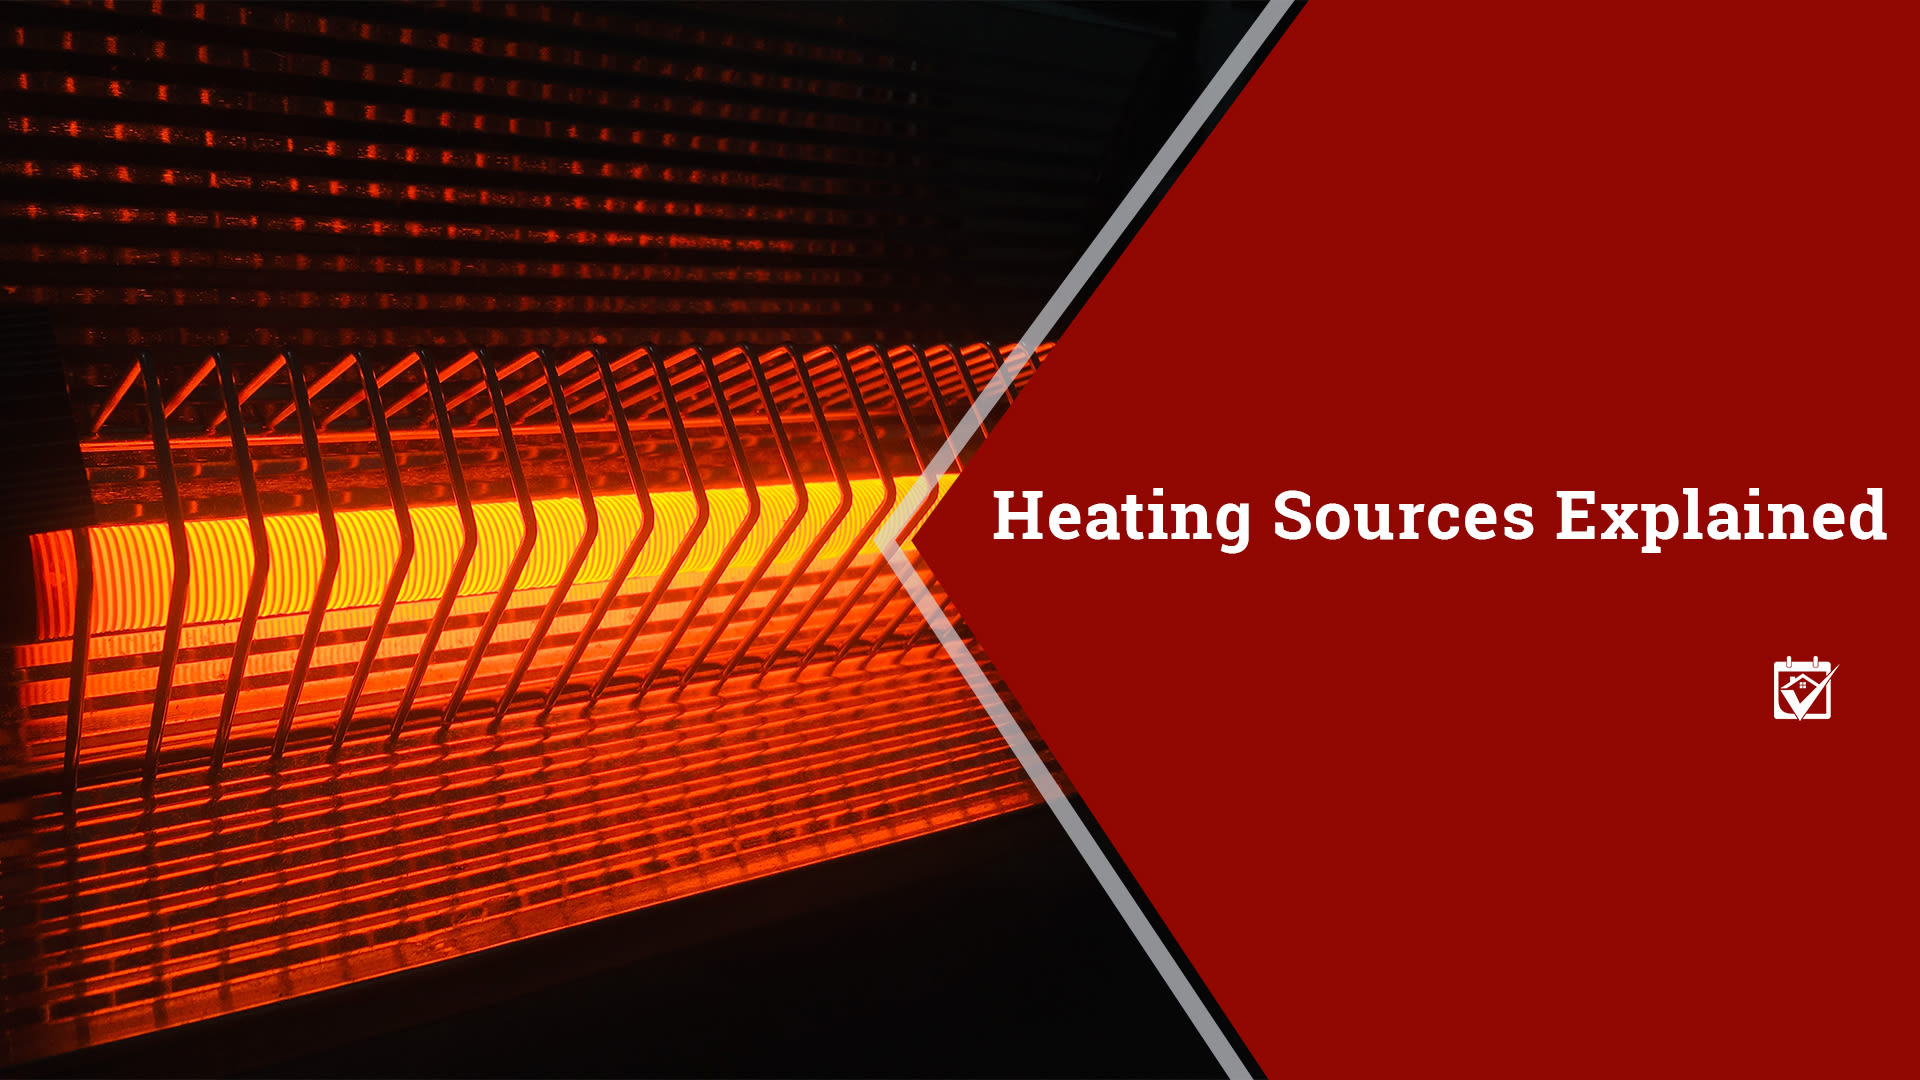 Heating Sources Explained